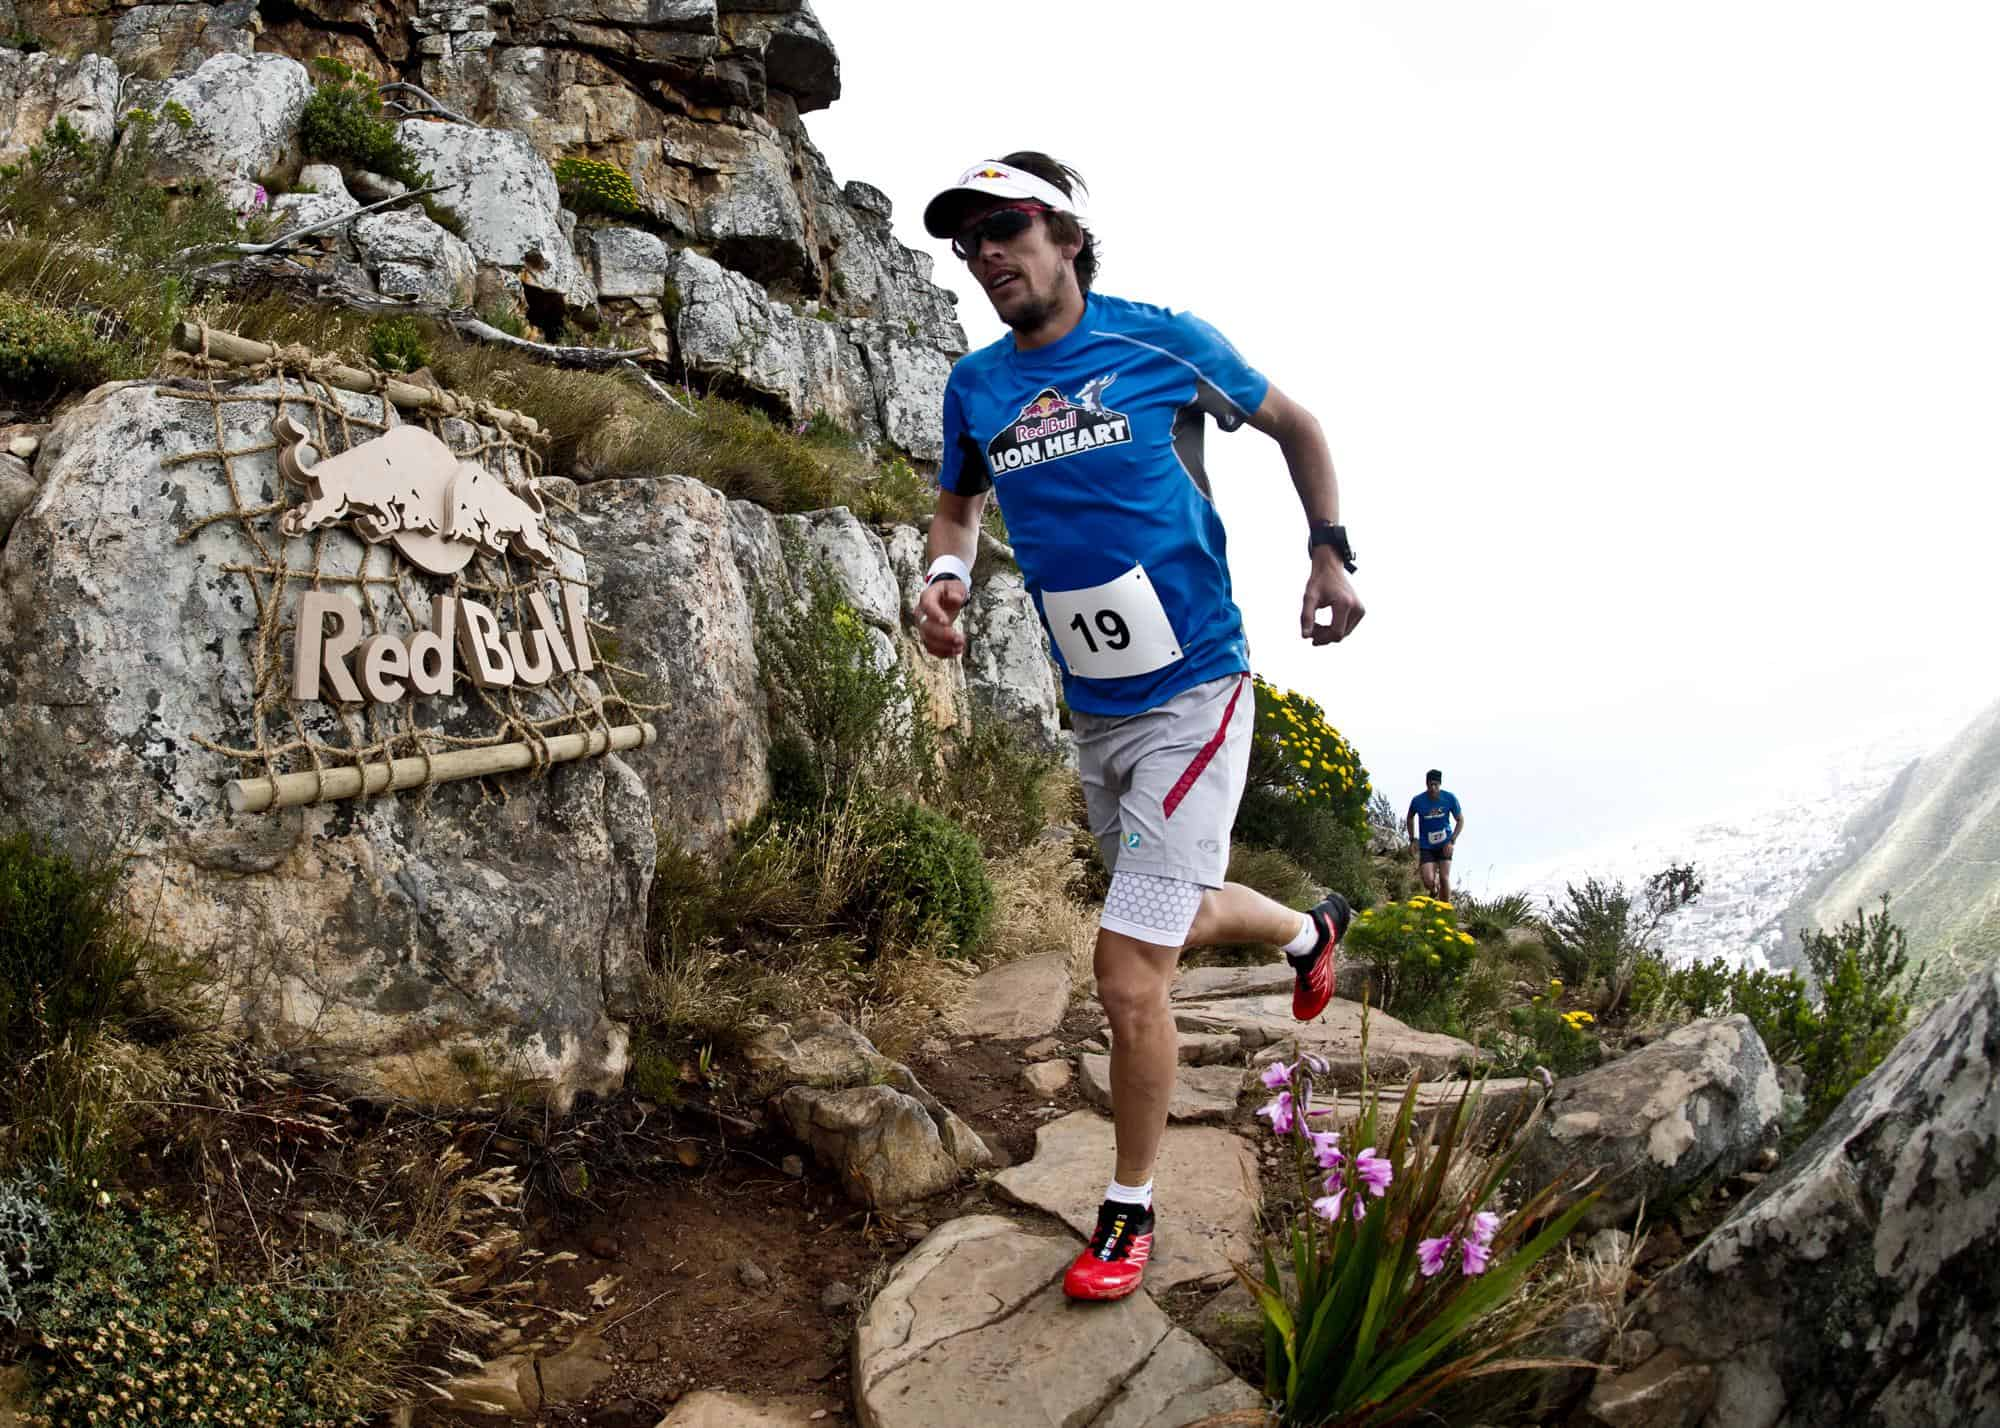 Ryan sandes giving it his all on lion 39 s head c craig kolesky nikon red bull content pool - Red bull content pool ...